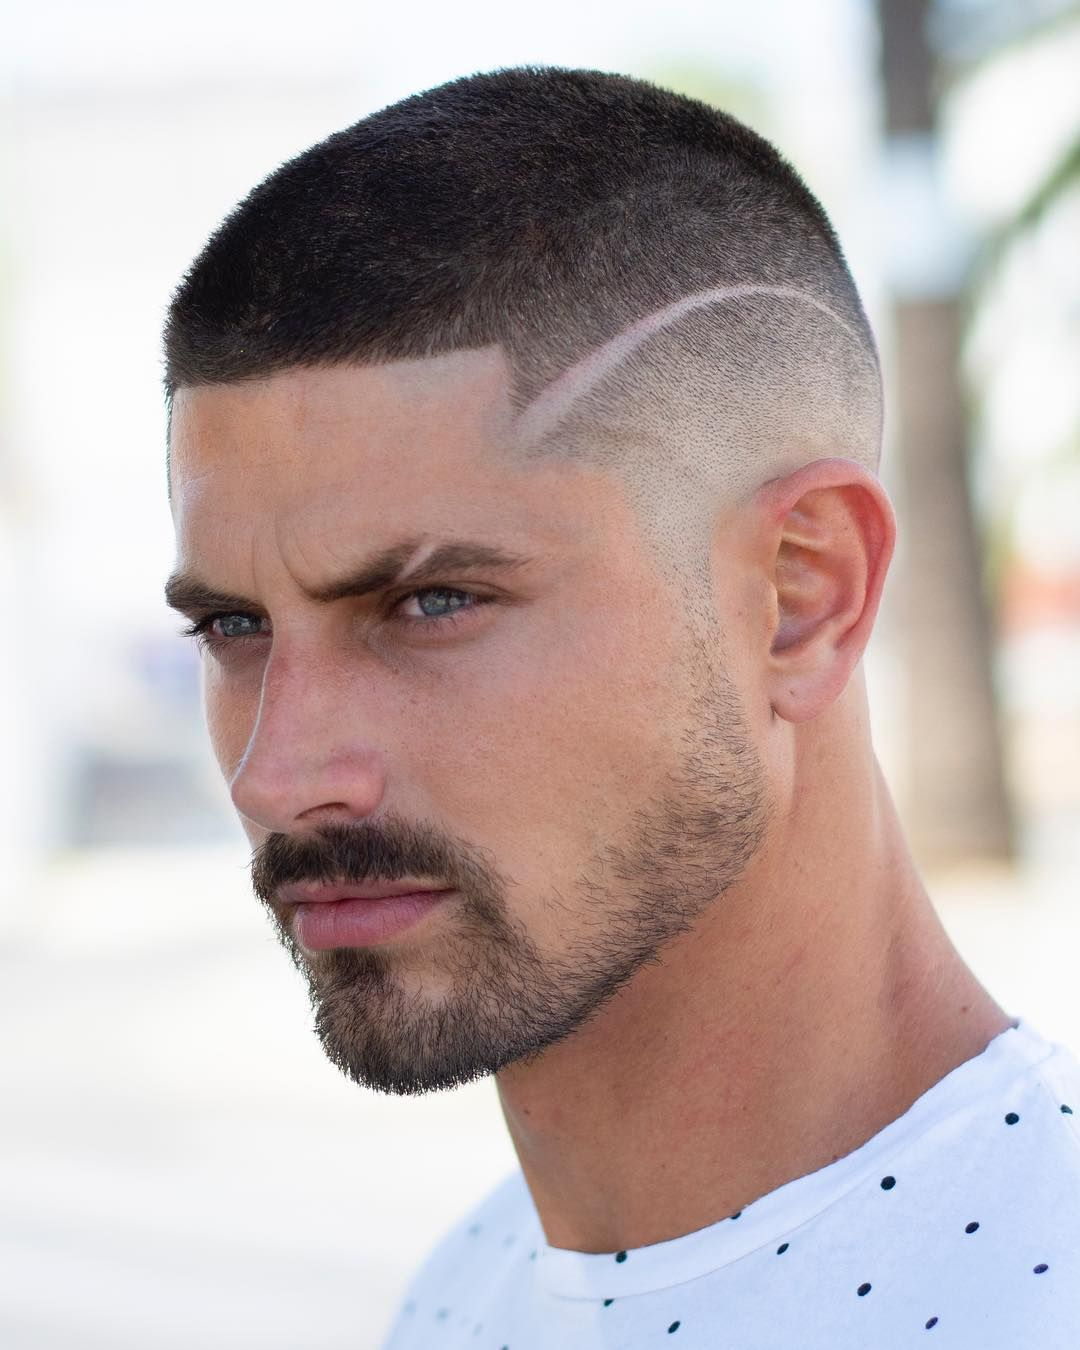 31 New Men S Hairstyles 2020 Update In 2020 Mid Fade Haircut Mens Haircuts Short Mens Haircuts Fade